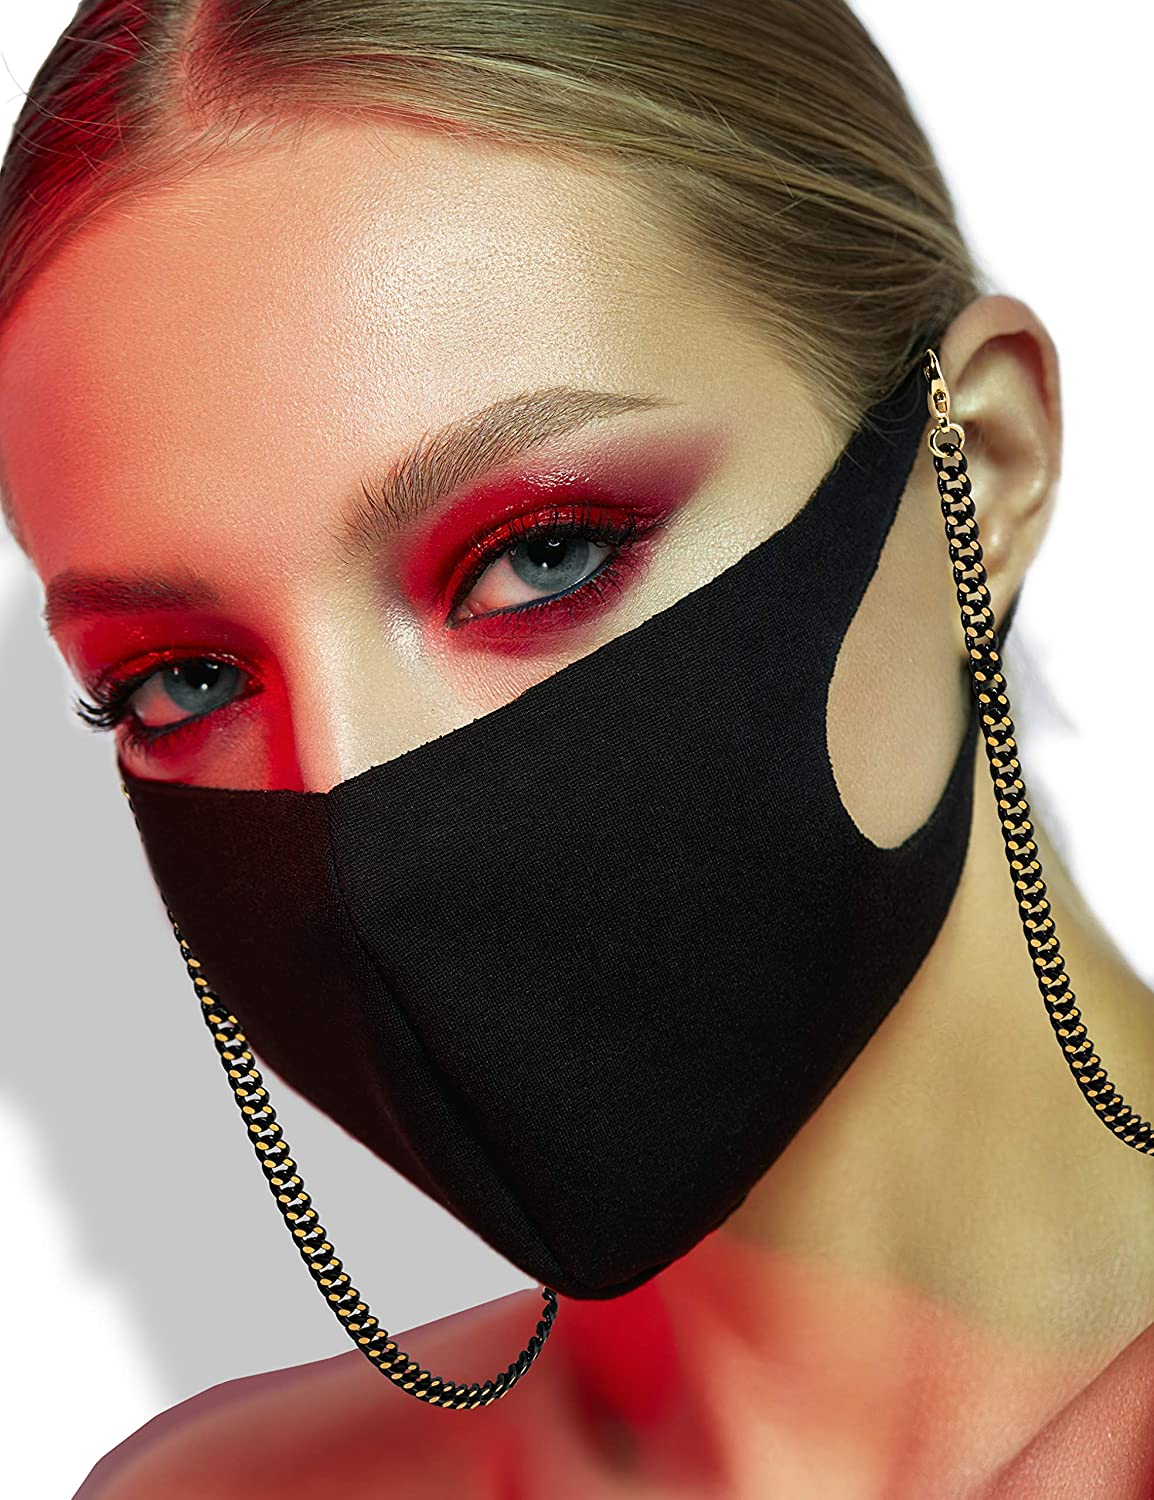 Face Mask Chain Women Necklace - Mask Holders Around Neck for Women, Black and Gold Chain Necklace Mask Retainer, Mask Strap Extender, Lanyard for Face Mask, Jewelry Chain Mask Accessories, Cuban Link Chain Holder